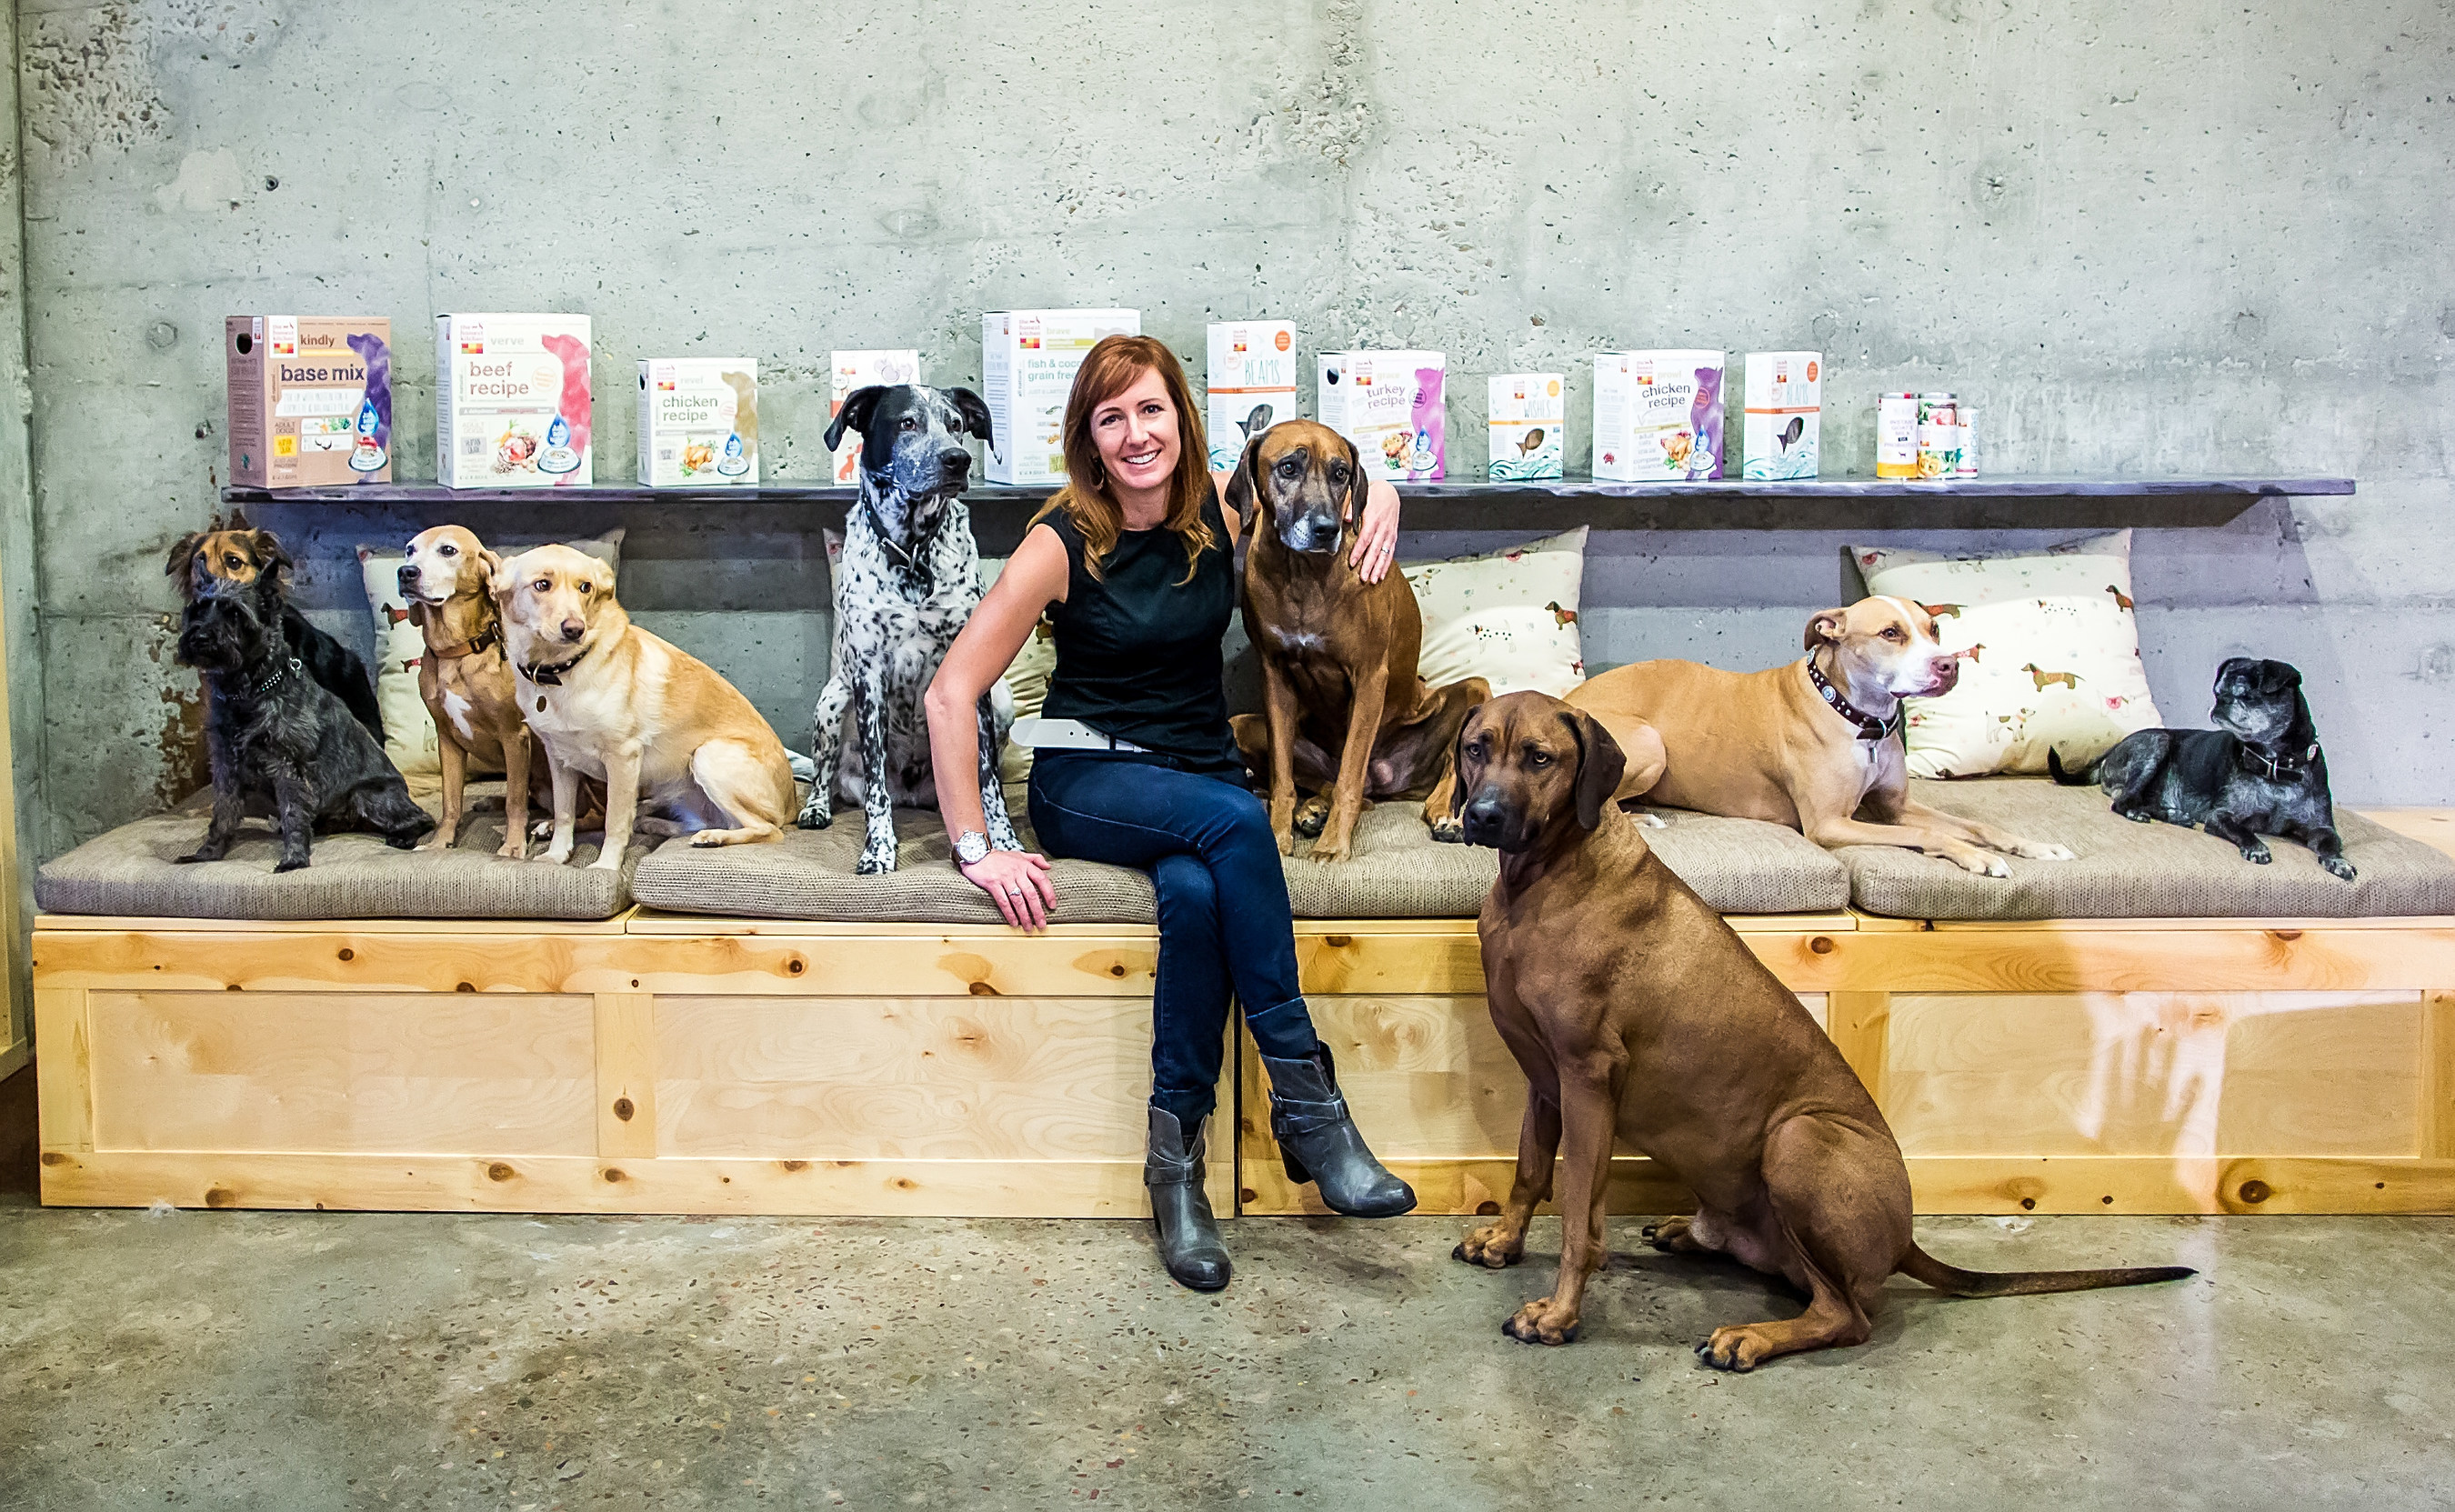 Lucy Postins, founder and CEO of San Diego-based The Honest Kitchen poses with co-woofers. The company, makers of all-natural dehydrated pet foods, supplements and treats, was recognized as a top place to work in America by Entrepreneur and Outside Magazines.